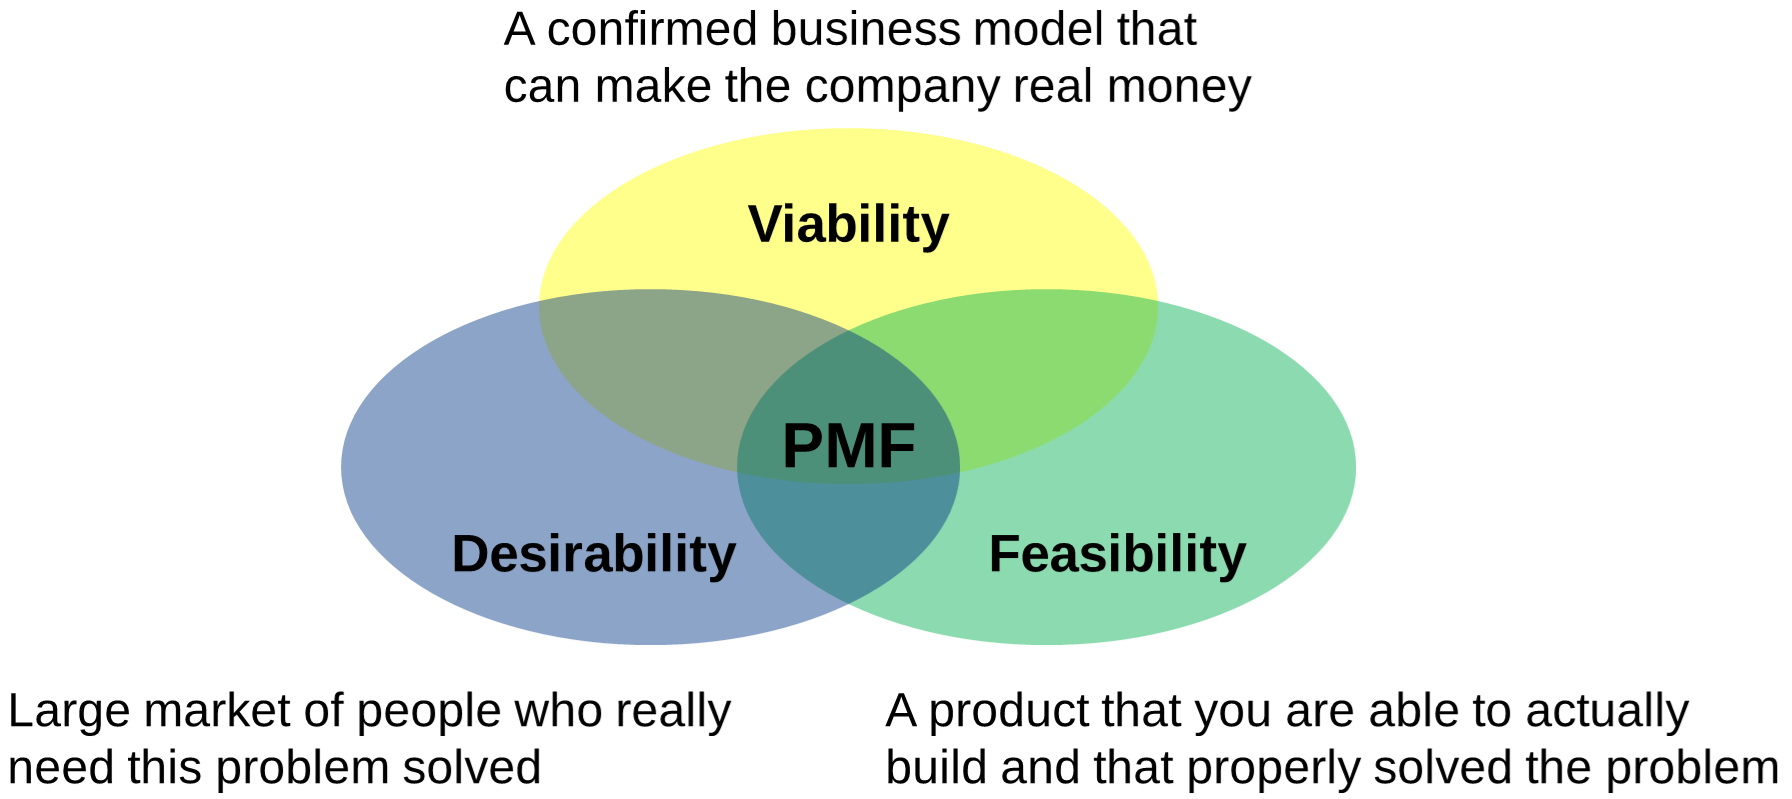 Human centric View of Product Market Fit